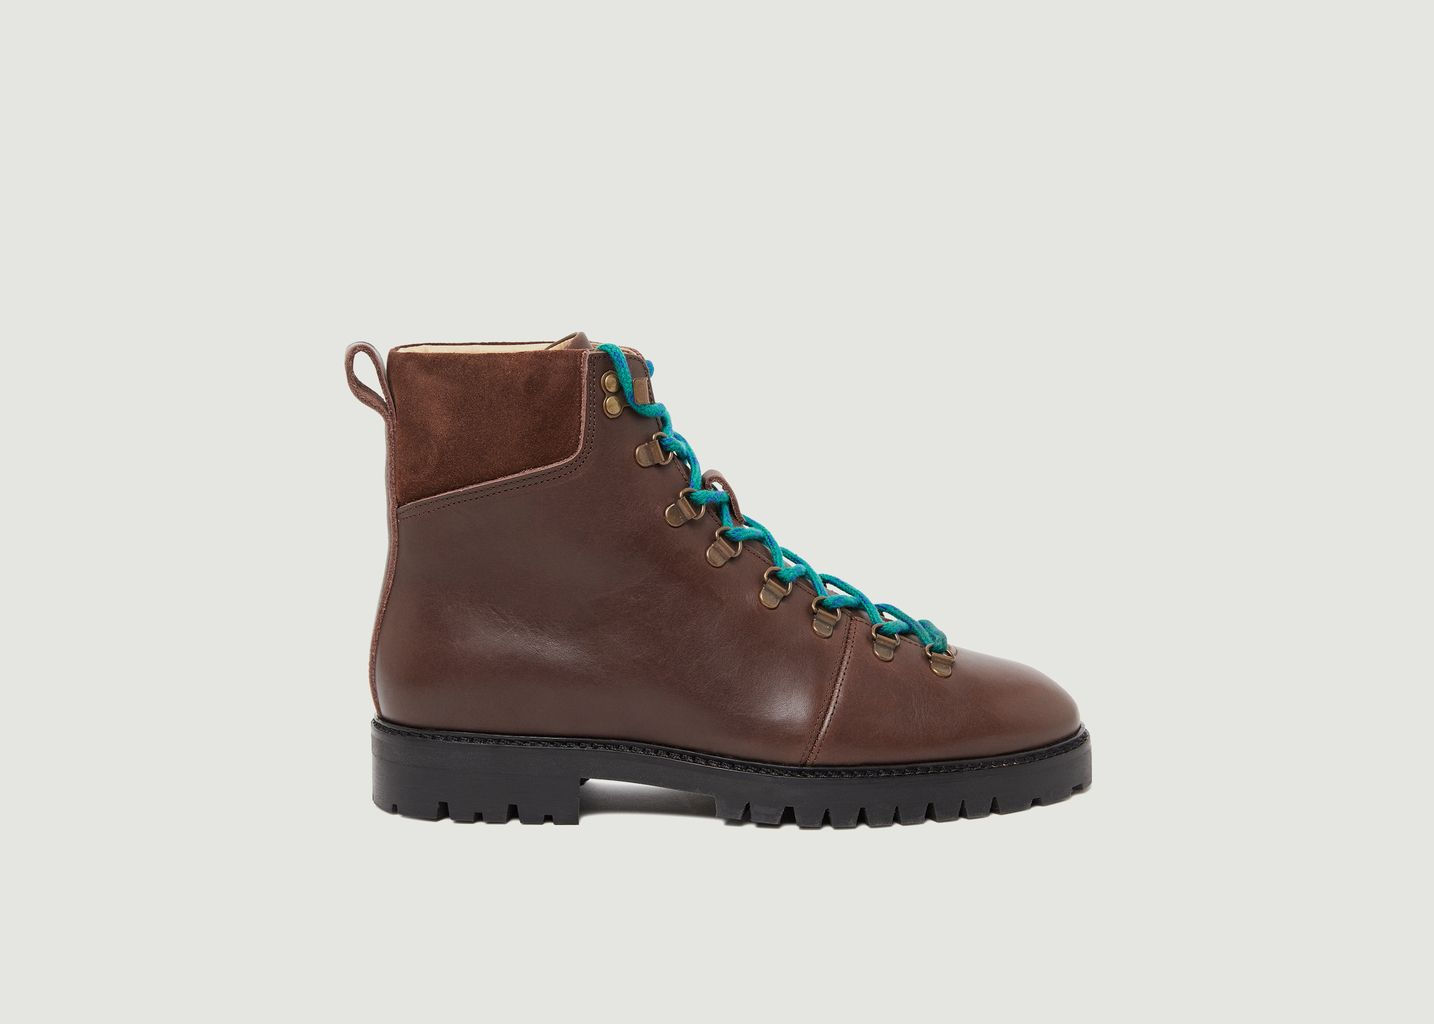 Bottines en cuir pull-up Niels - M. Moustache